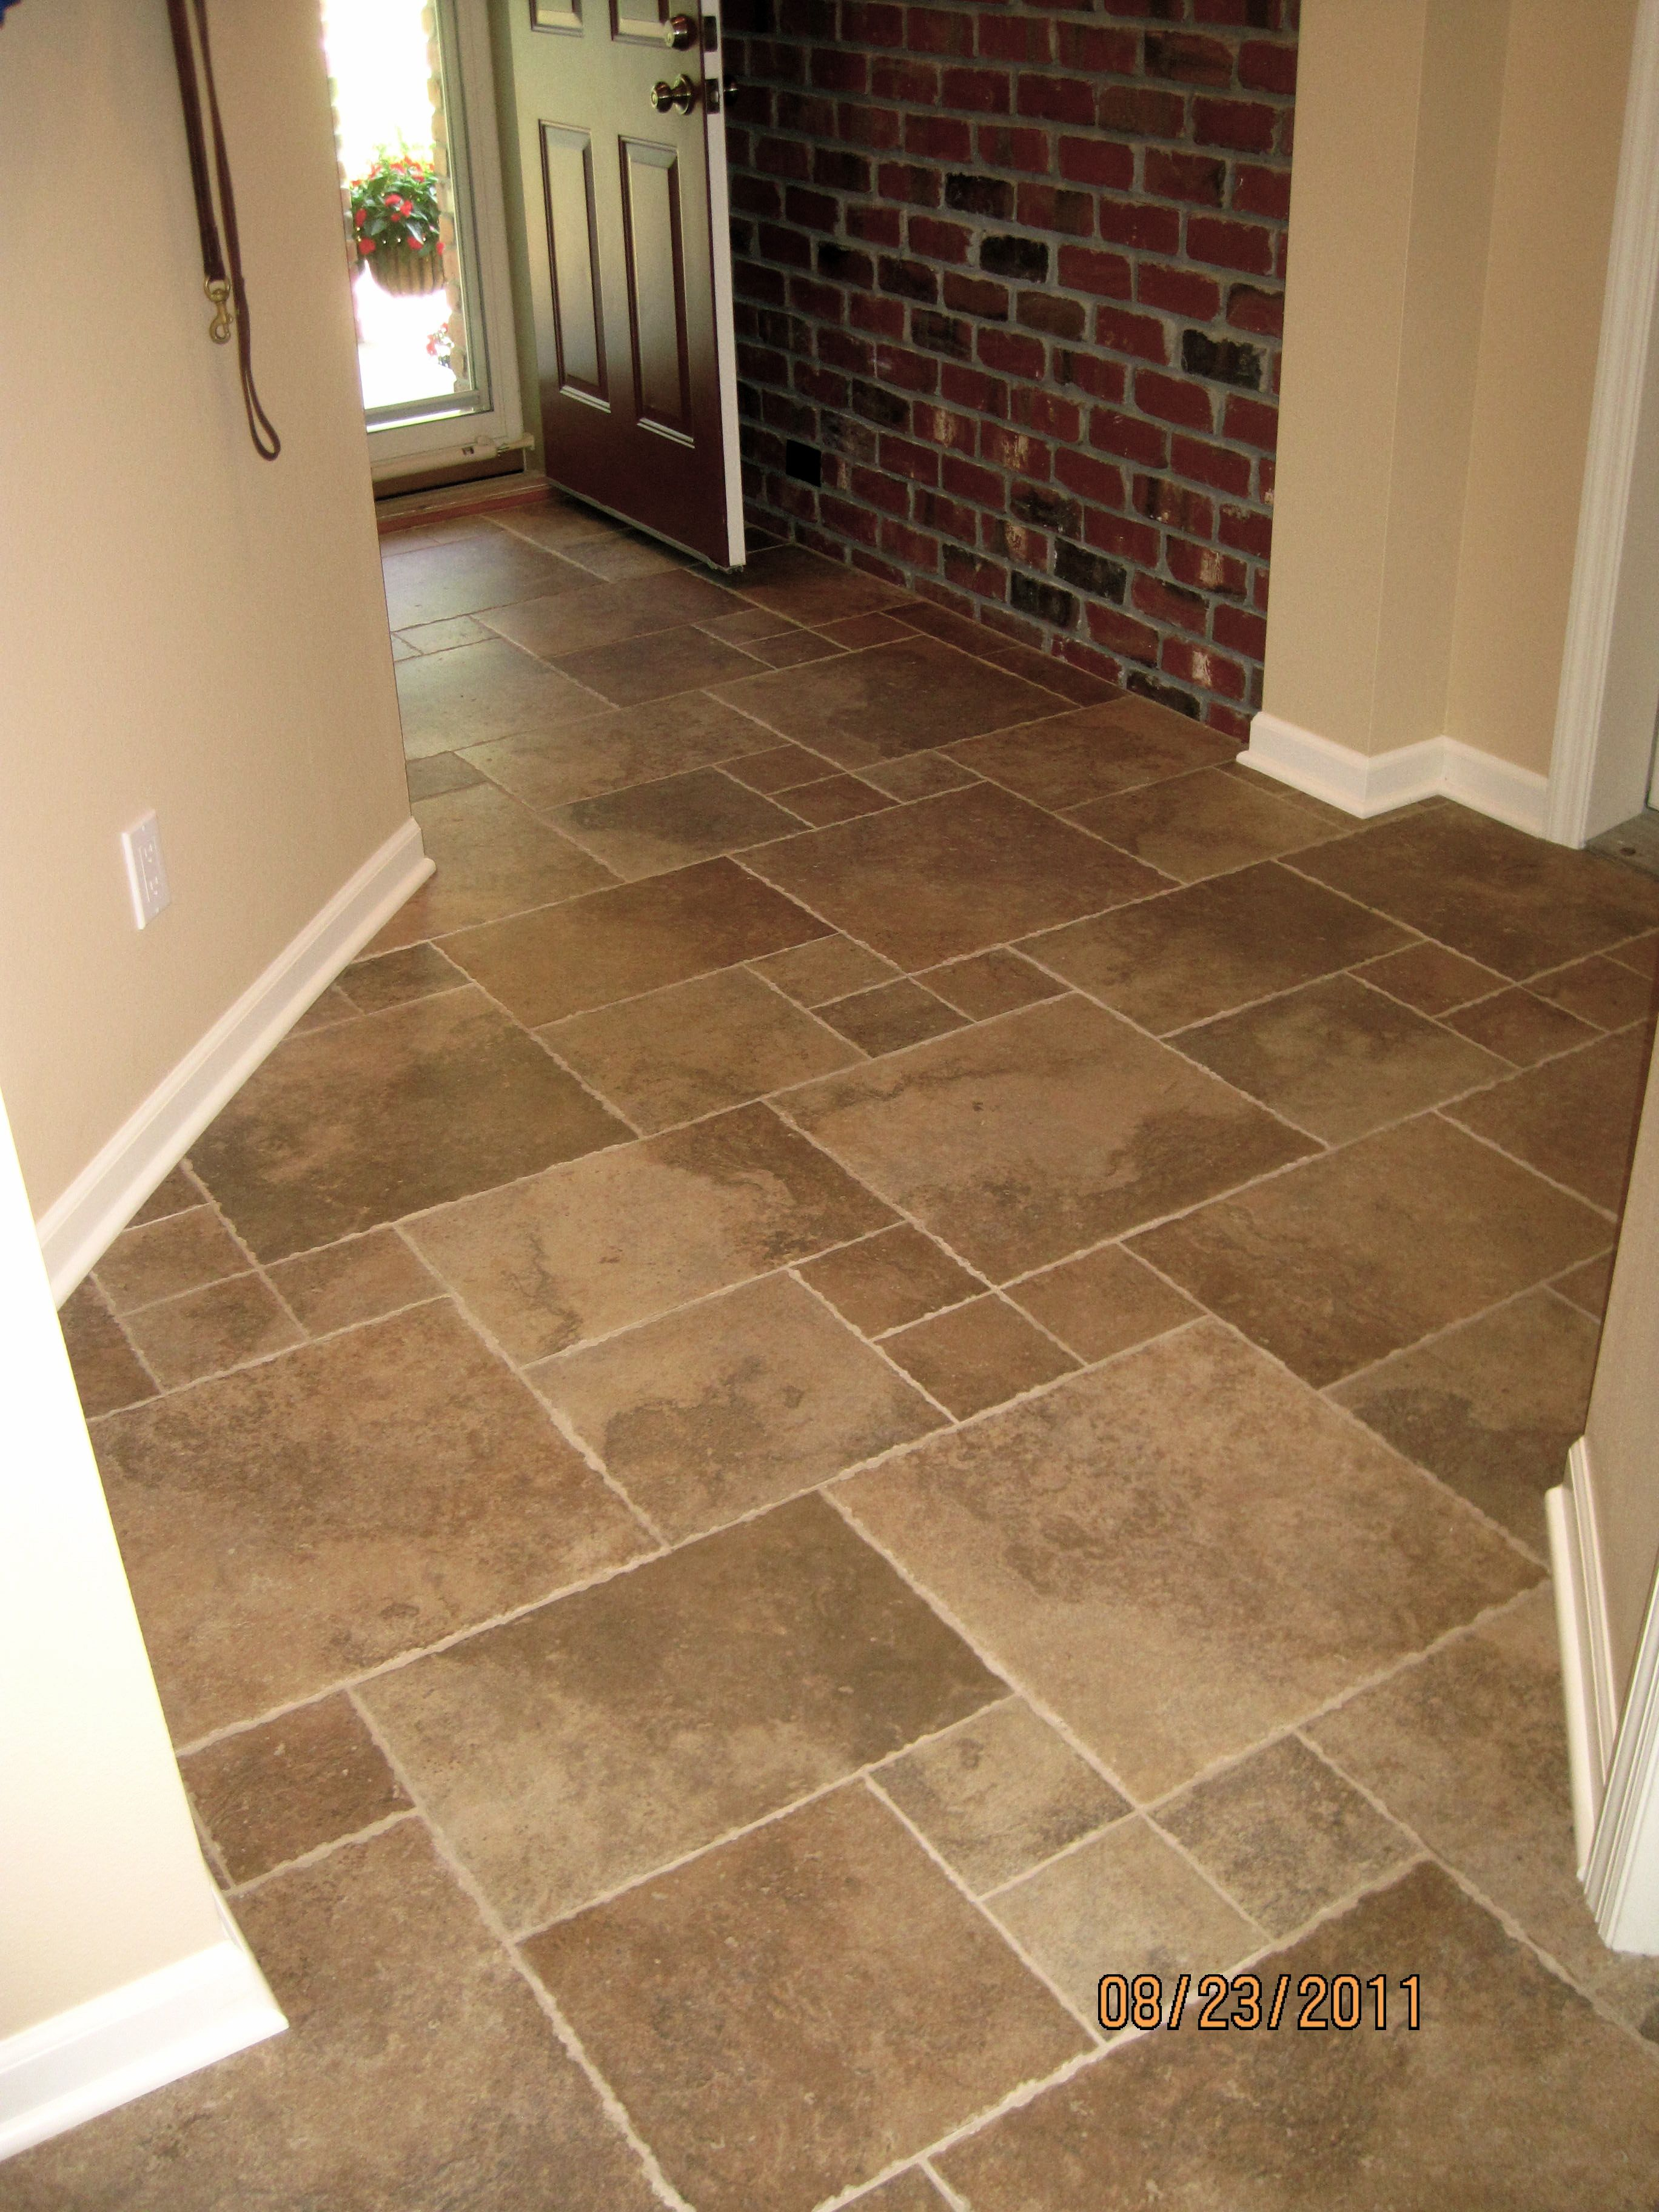 This tumbled edge porcelain was laid in a versaille pattern tumbled edge porcelain laid in a versaille pattern dailygadgetfo Gallery